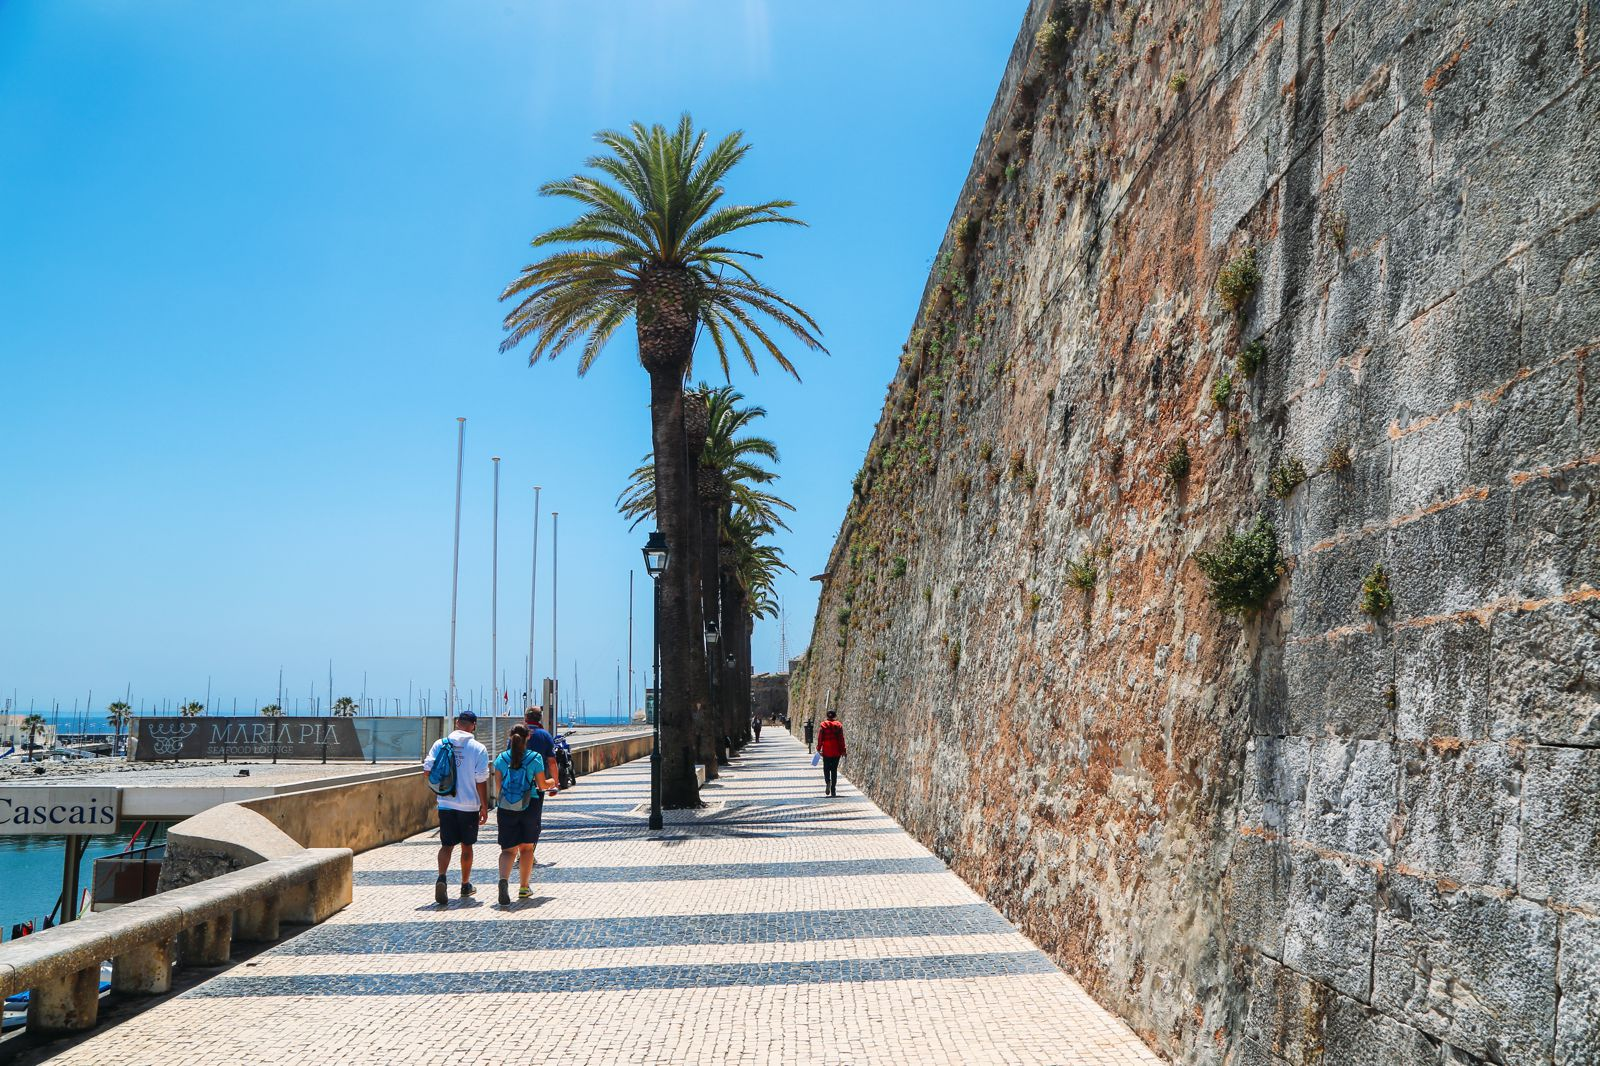 The Beautiful Seaside Town Of Cascais In Portugal... (22)